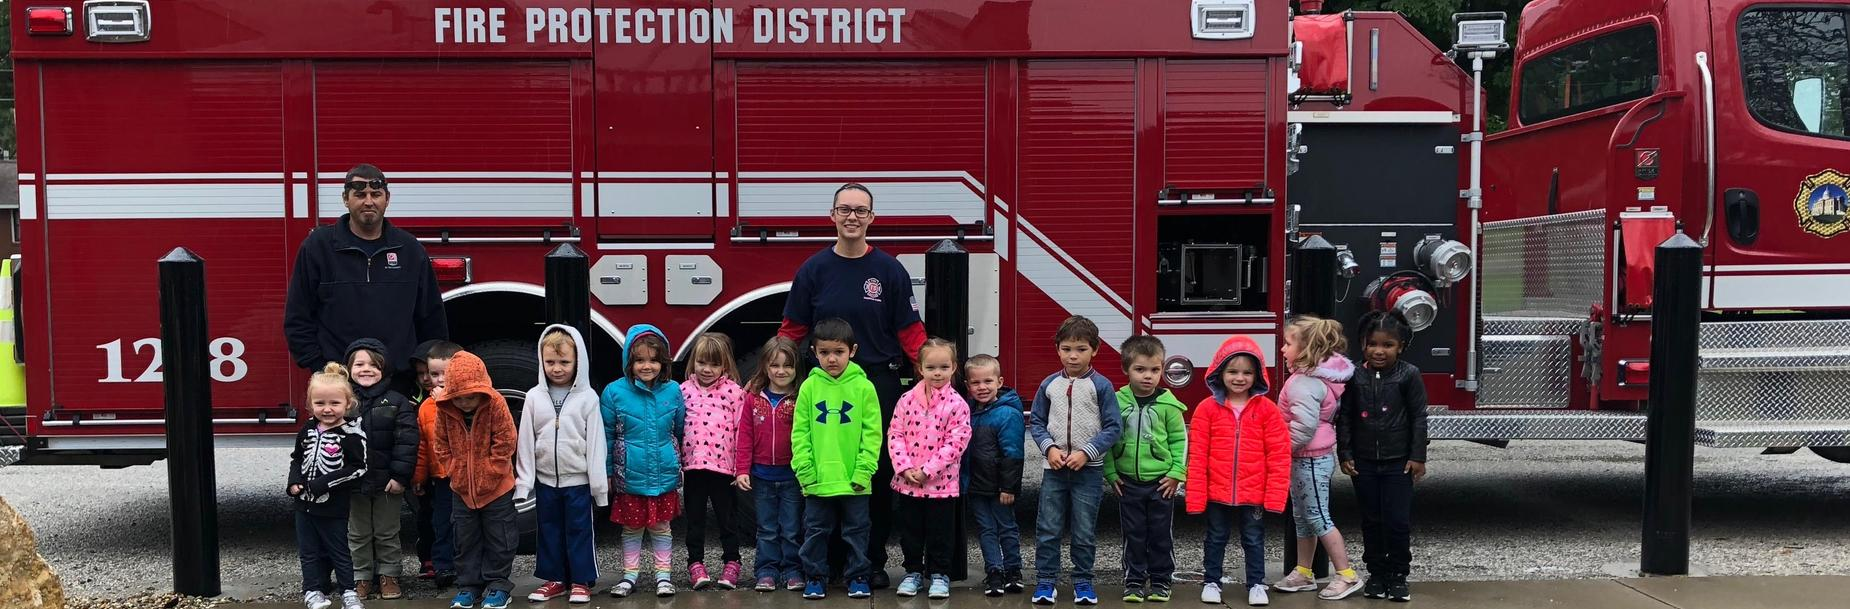 PreK class poses with firetruck